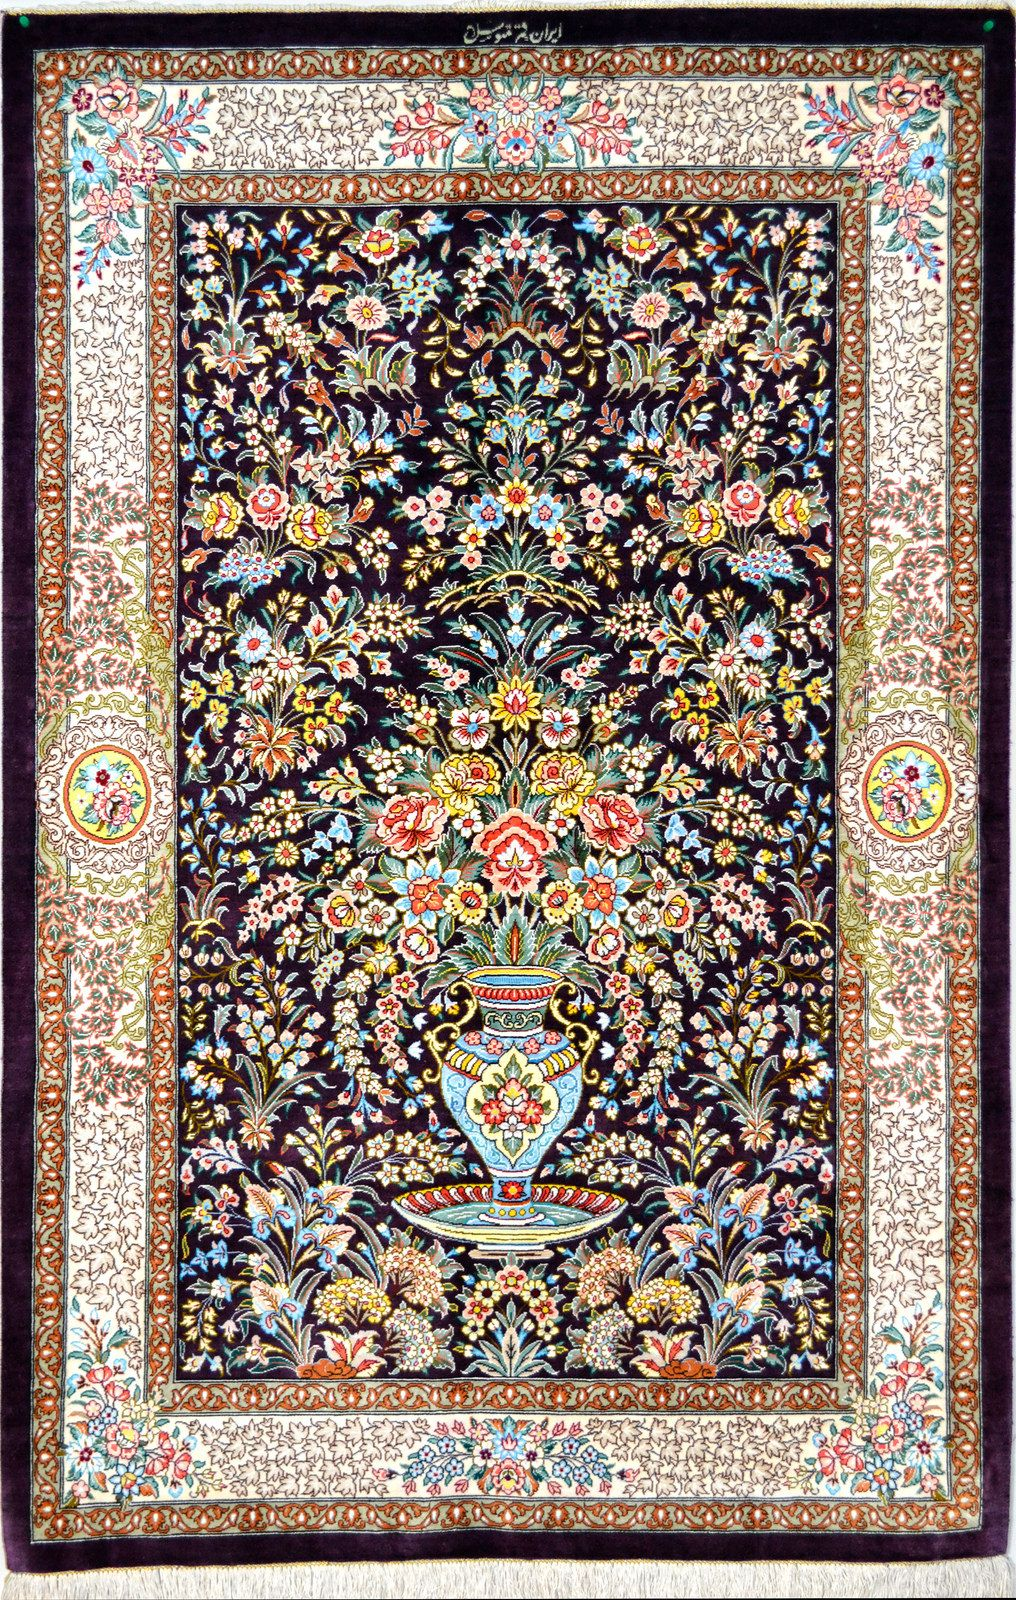 Iranian Qum Silk Persian Rugs are Great Picks for Home Decoration ... : Popular silk rugs on the ...